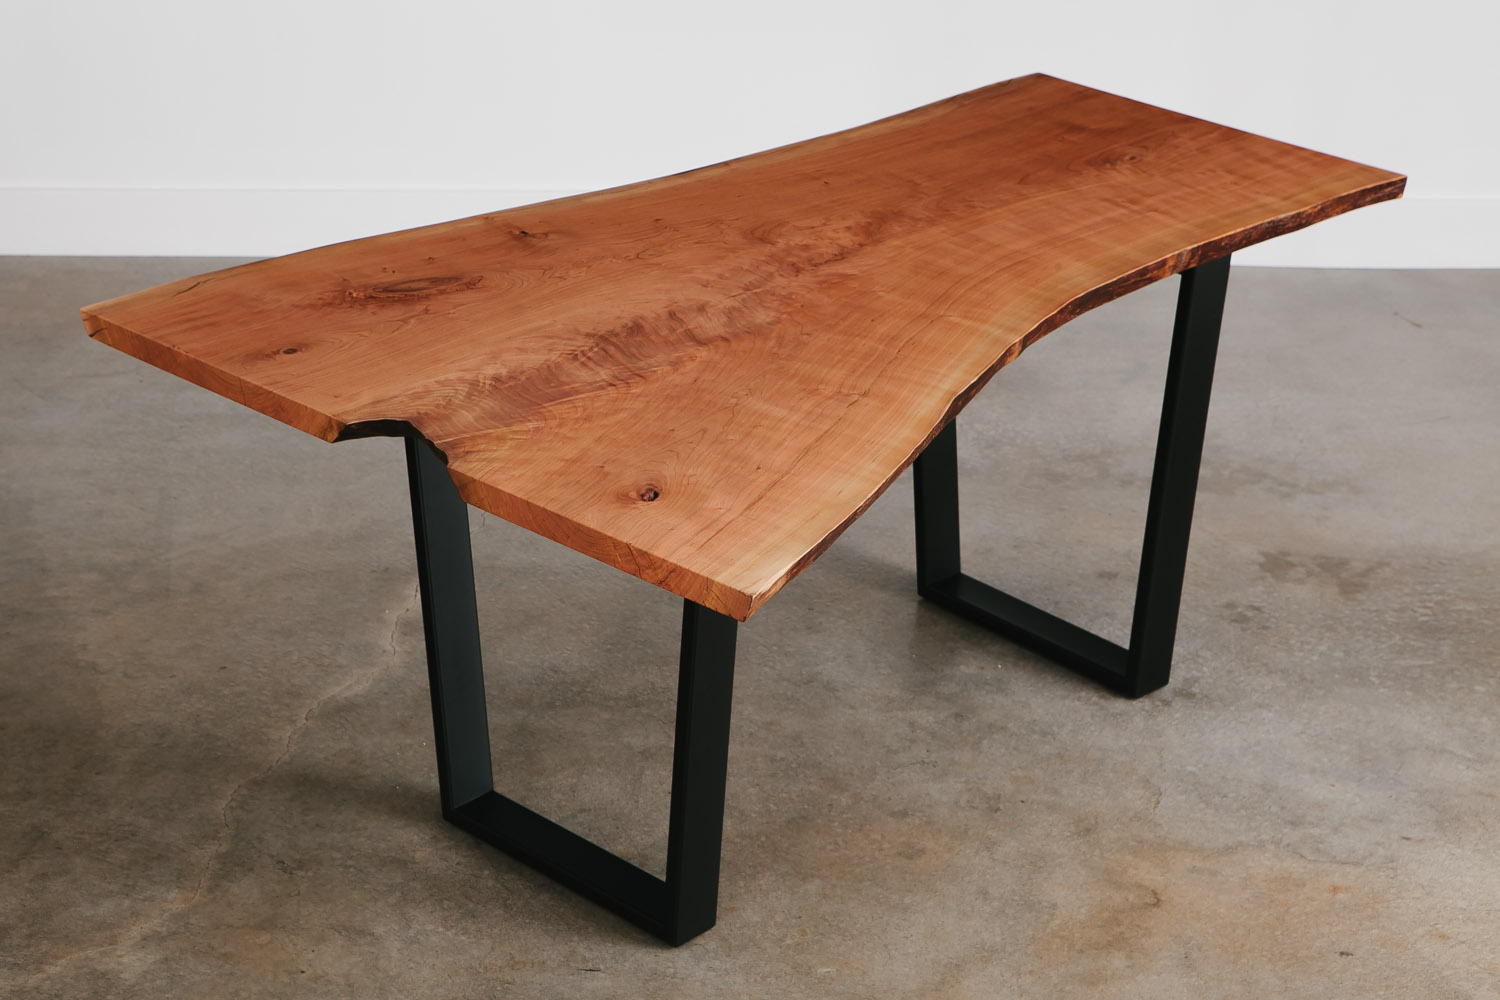 Live edge cherry desk with natural tree characteristics